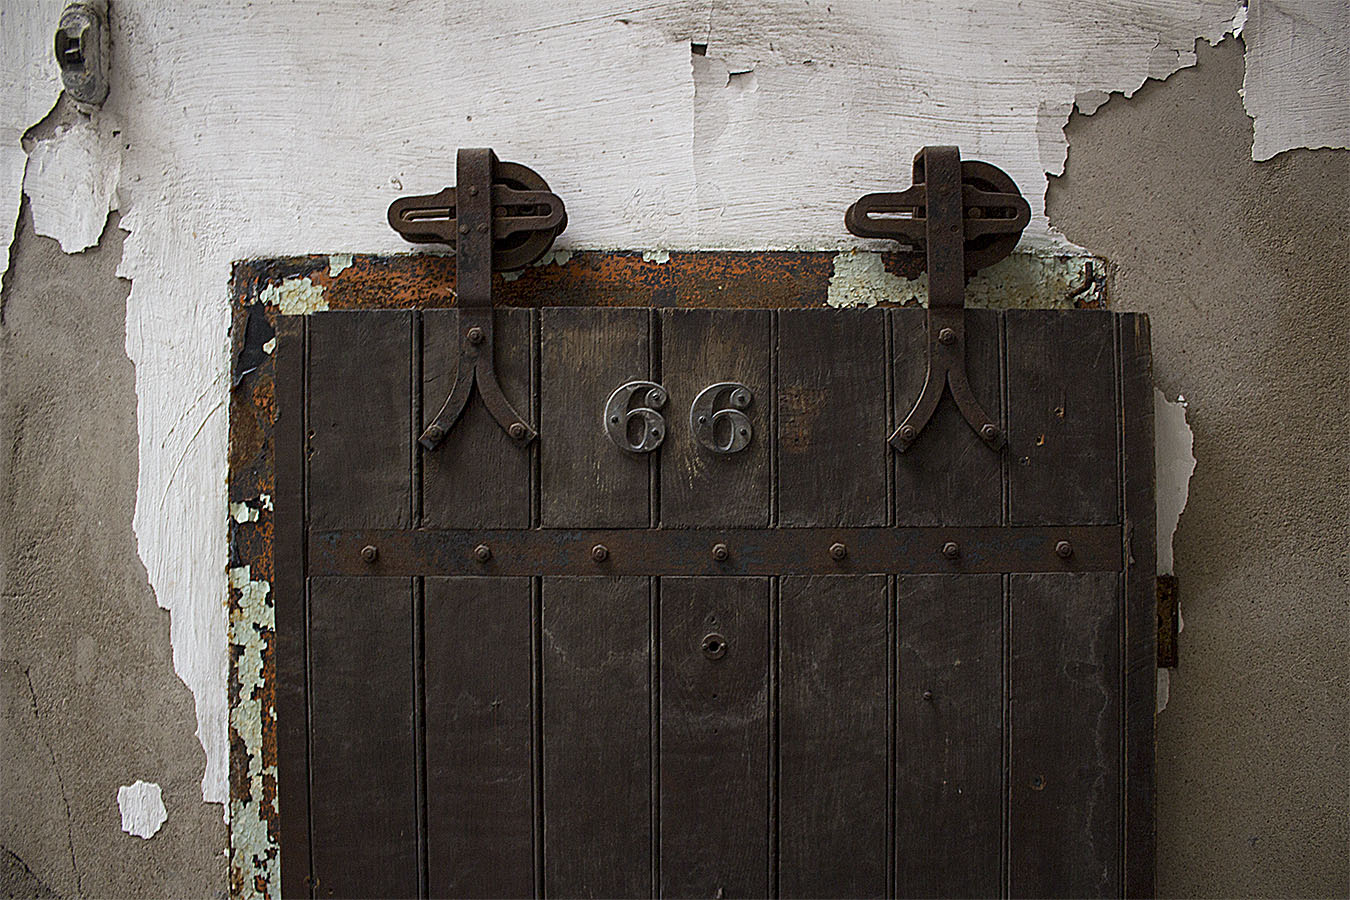 brian_schoenauer_photography_eastern_state_penitentiary_door_cell_chipped_paint_66_rust_door